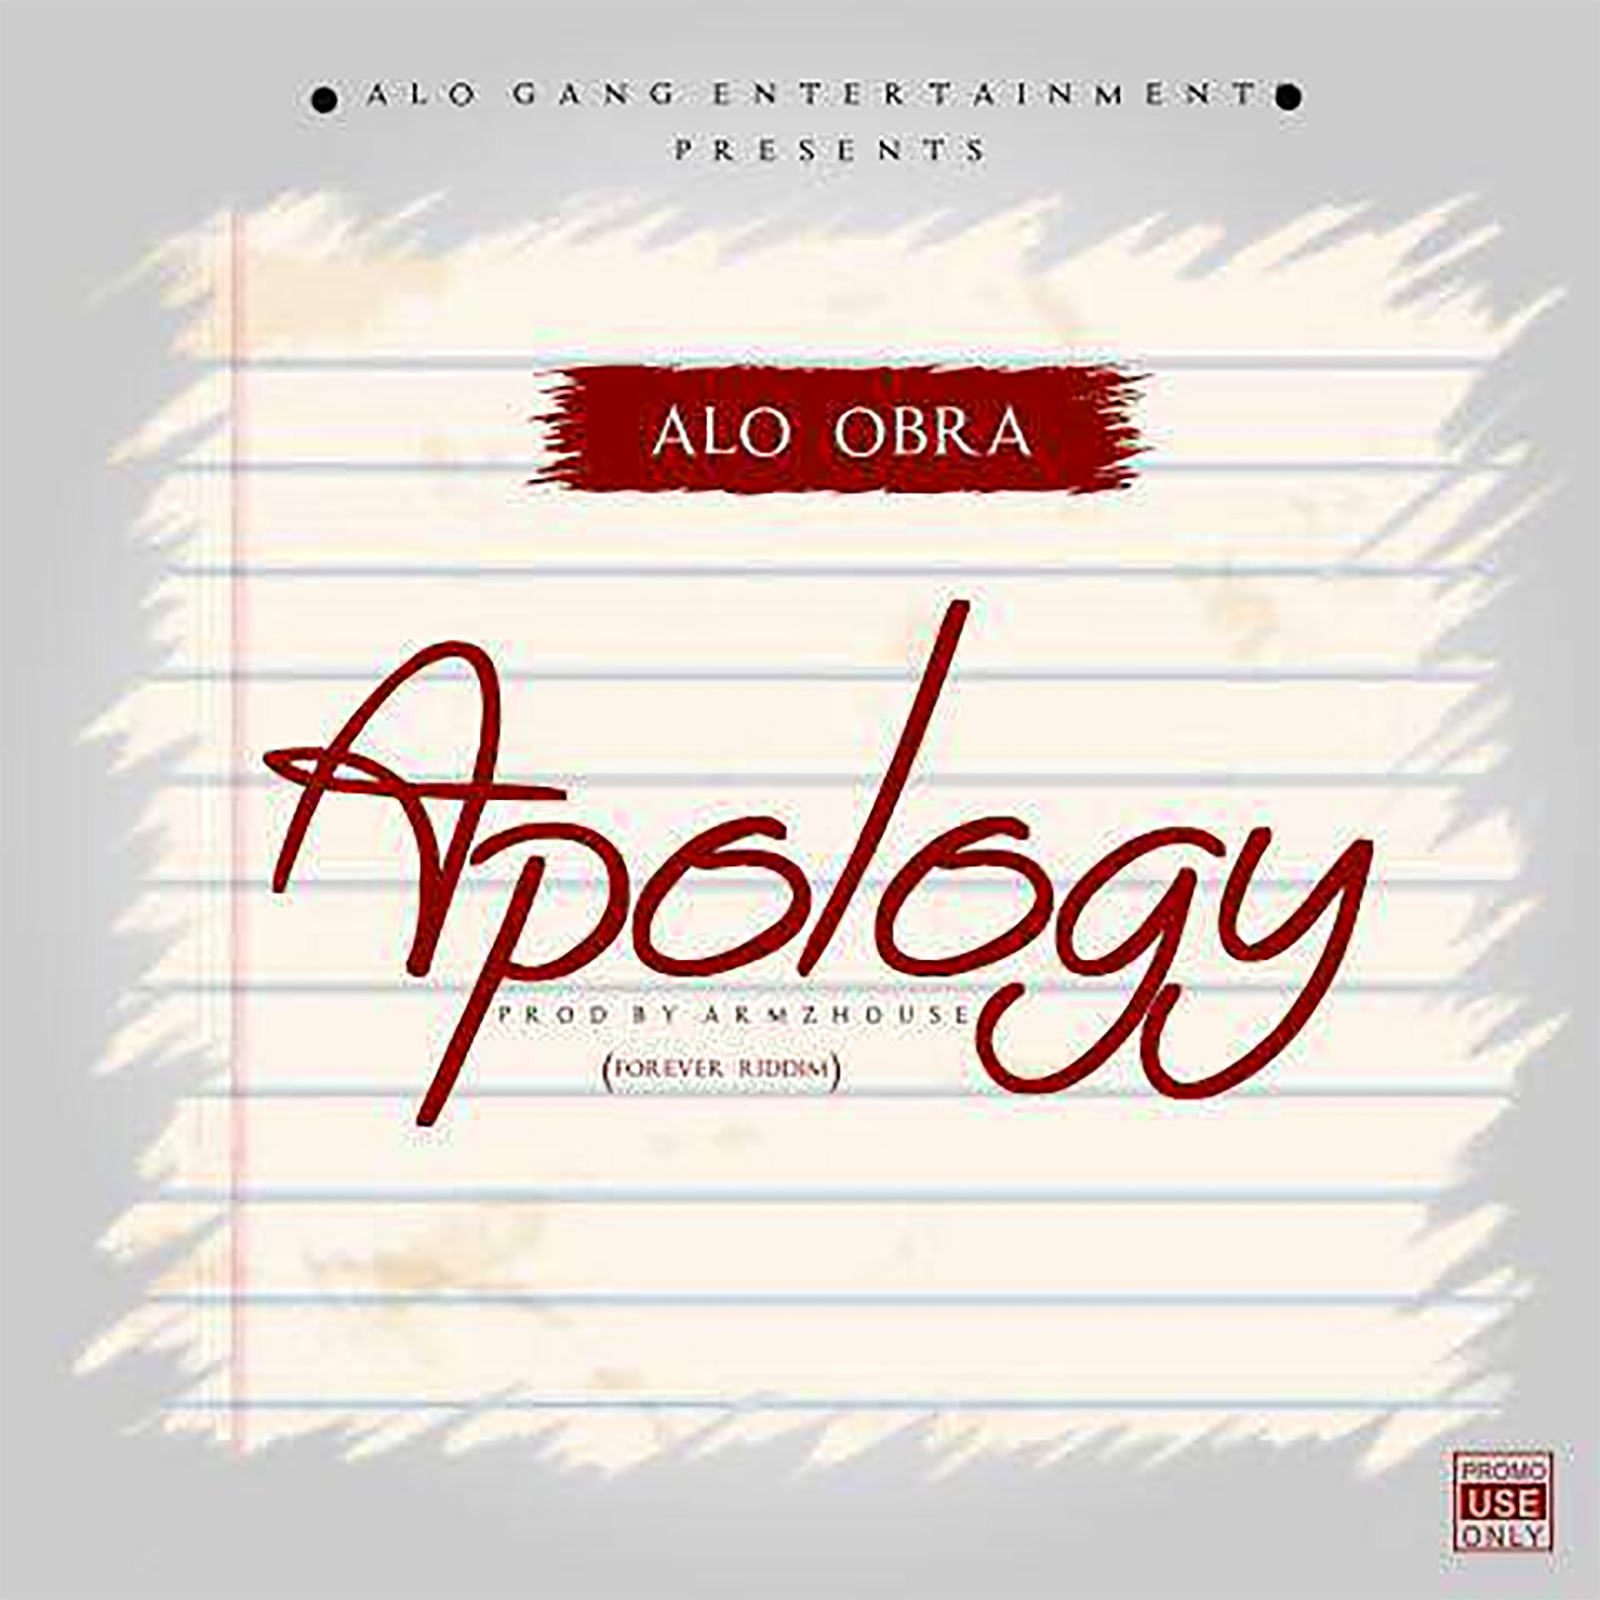 Apology by Alo Obra